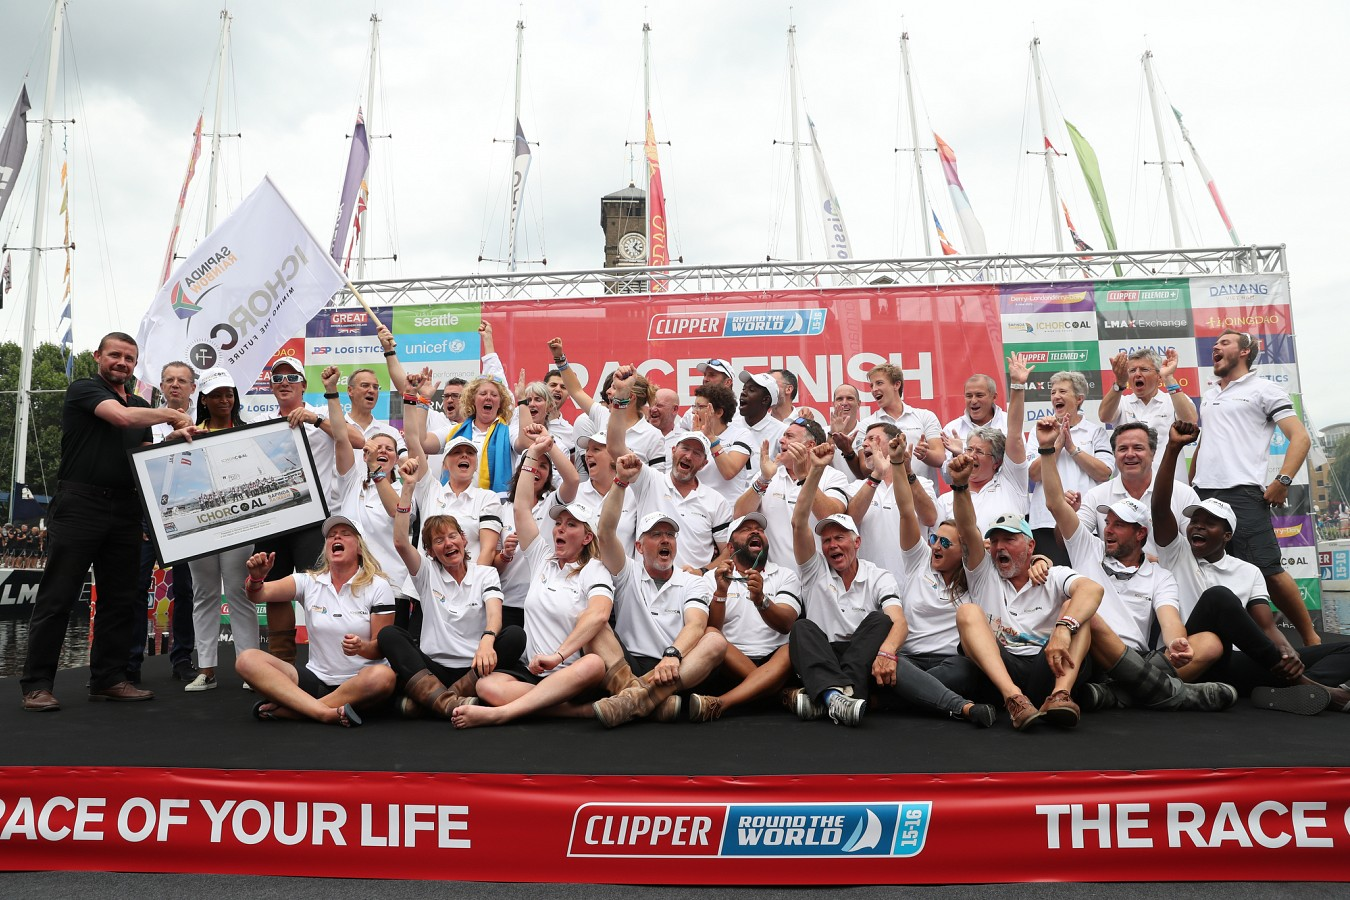 Trudy & the crew of Ichorcoal celebrating their massive acheivement on crossing the finish line